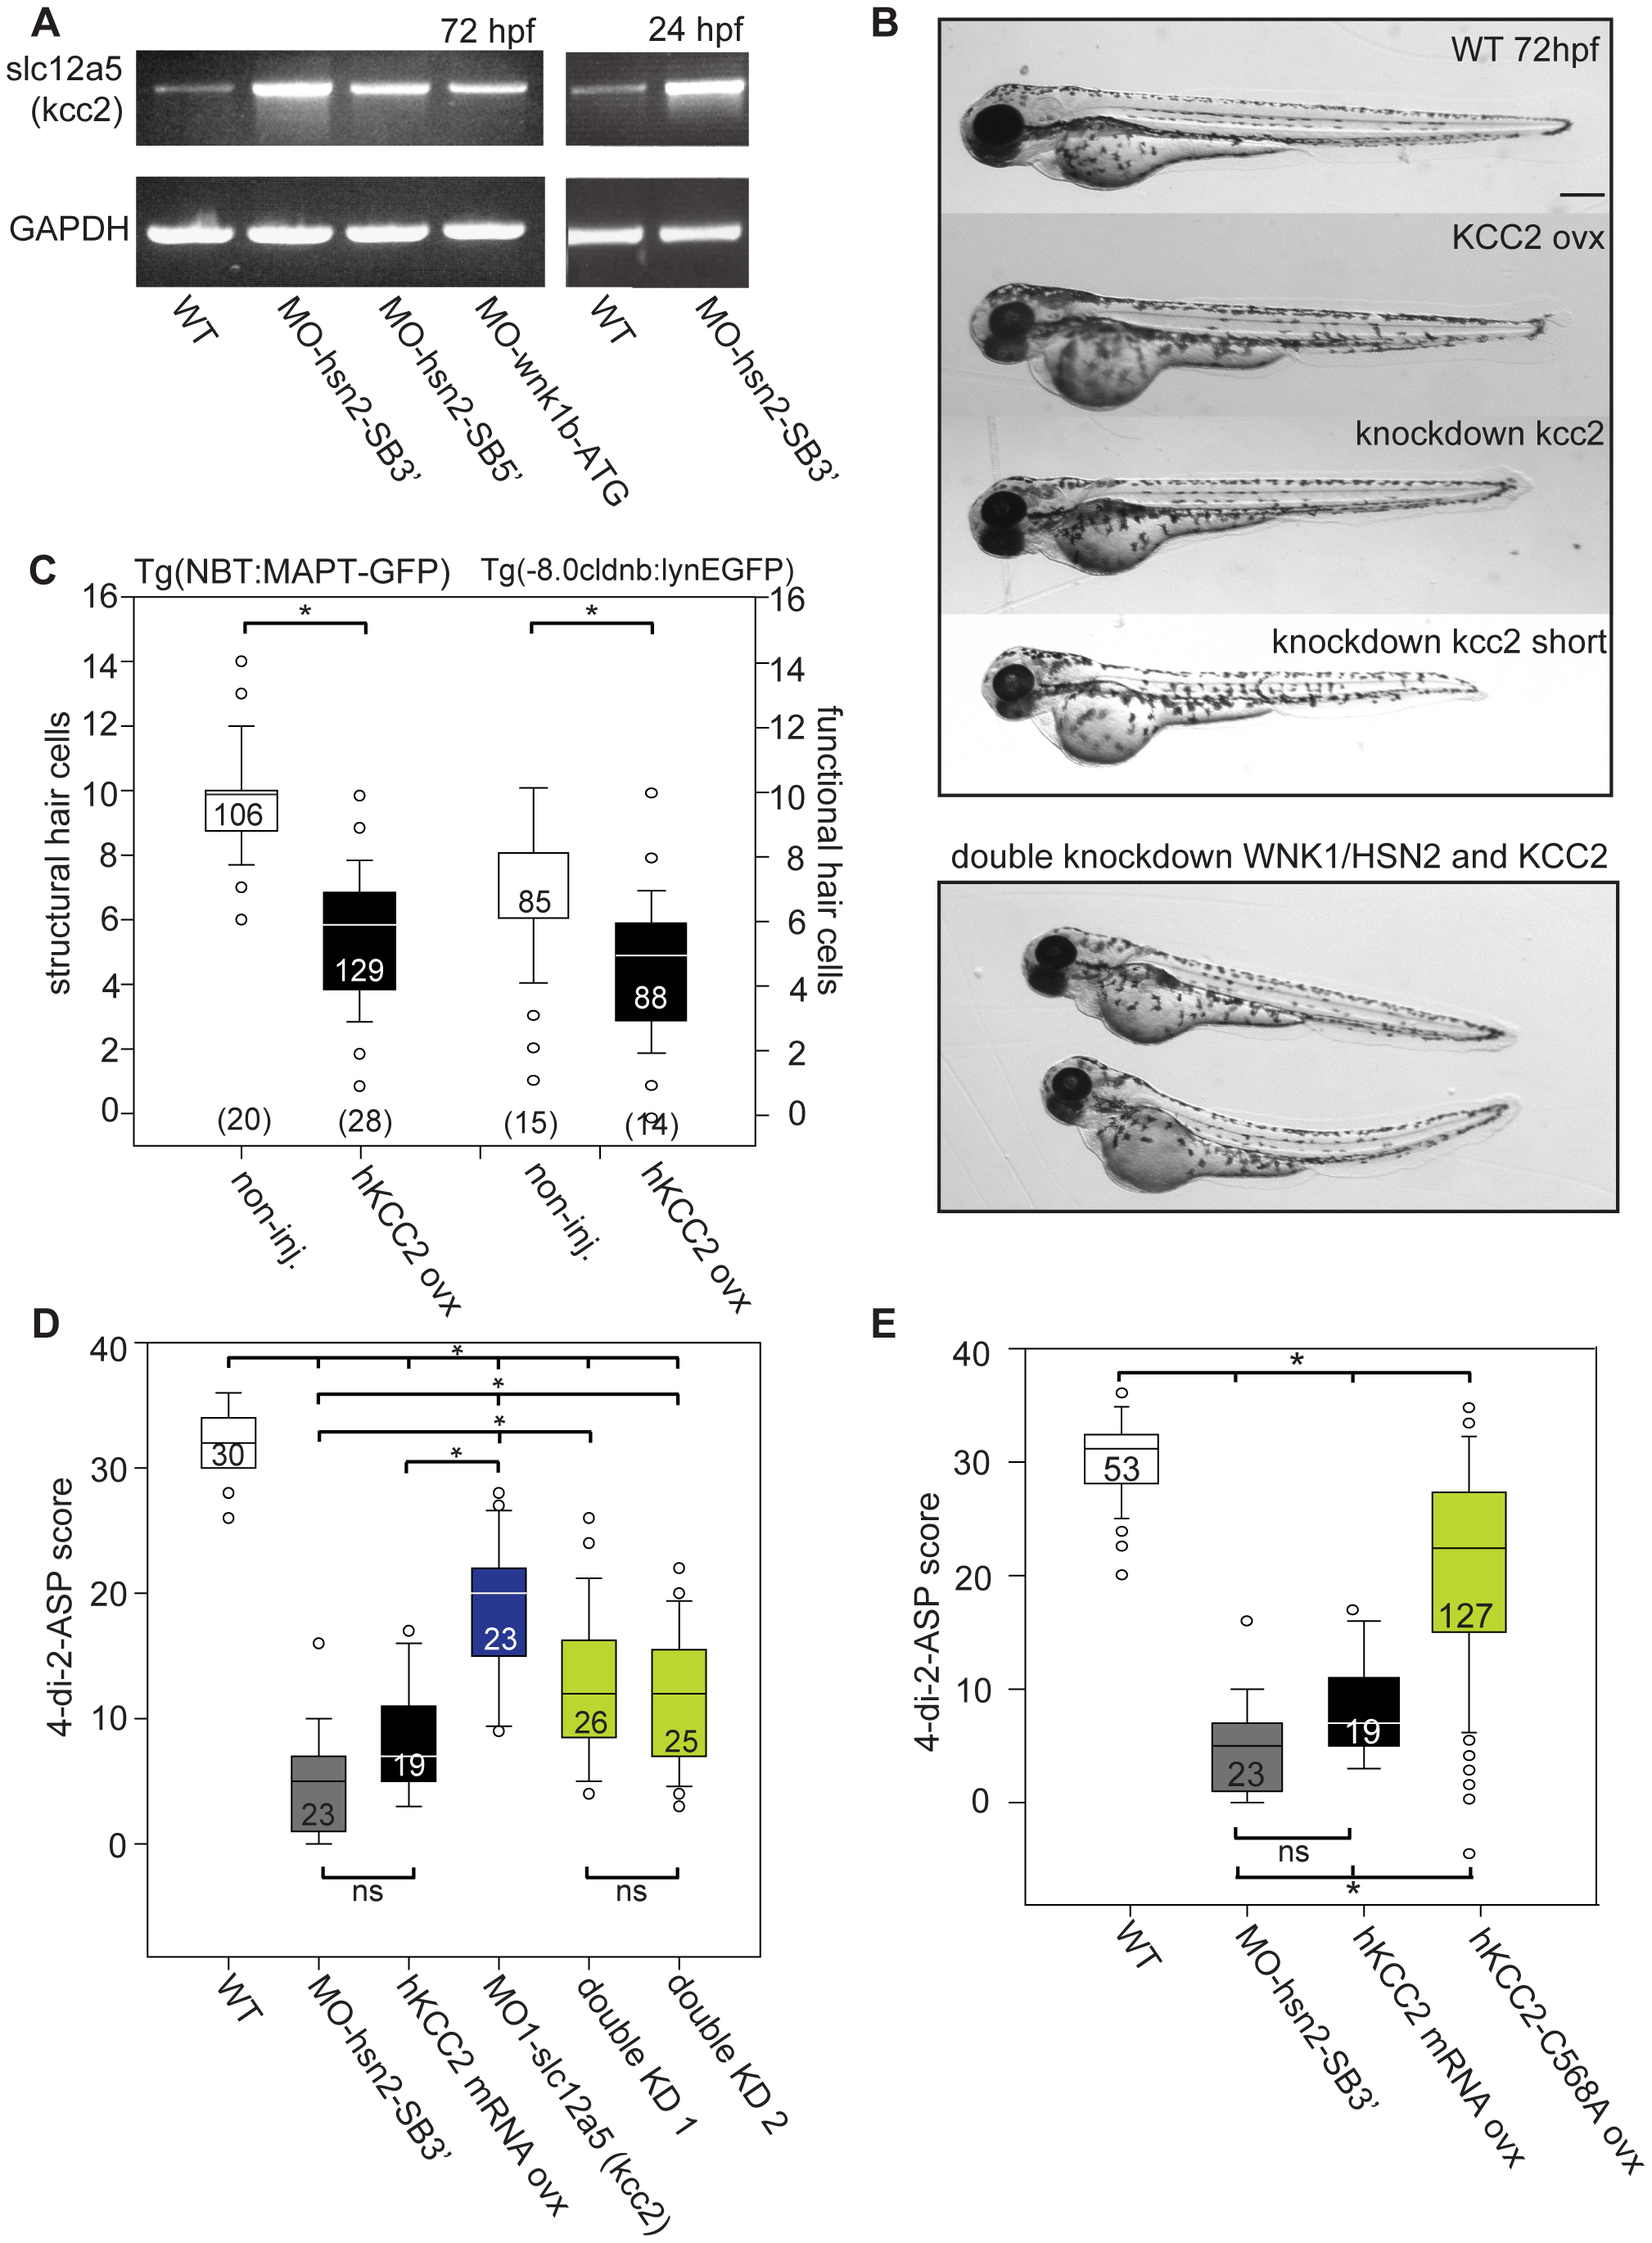 KCC2 is overexpressed in WNK1/HSN2 knockdown embryos.